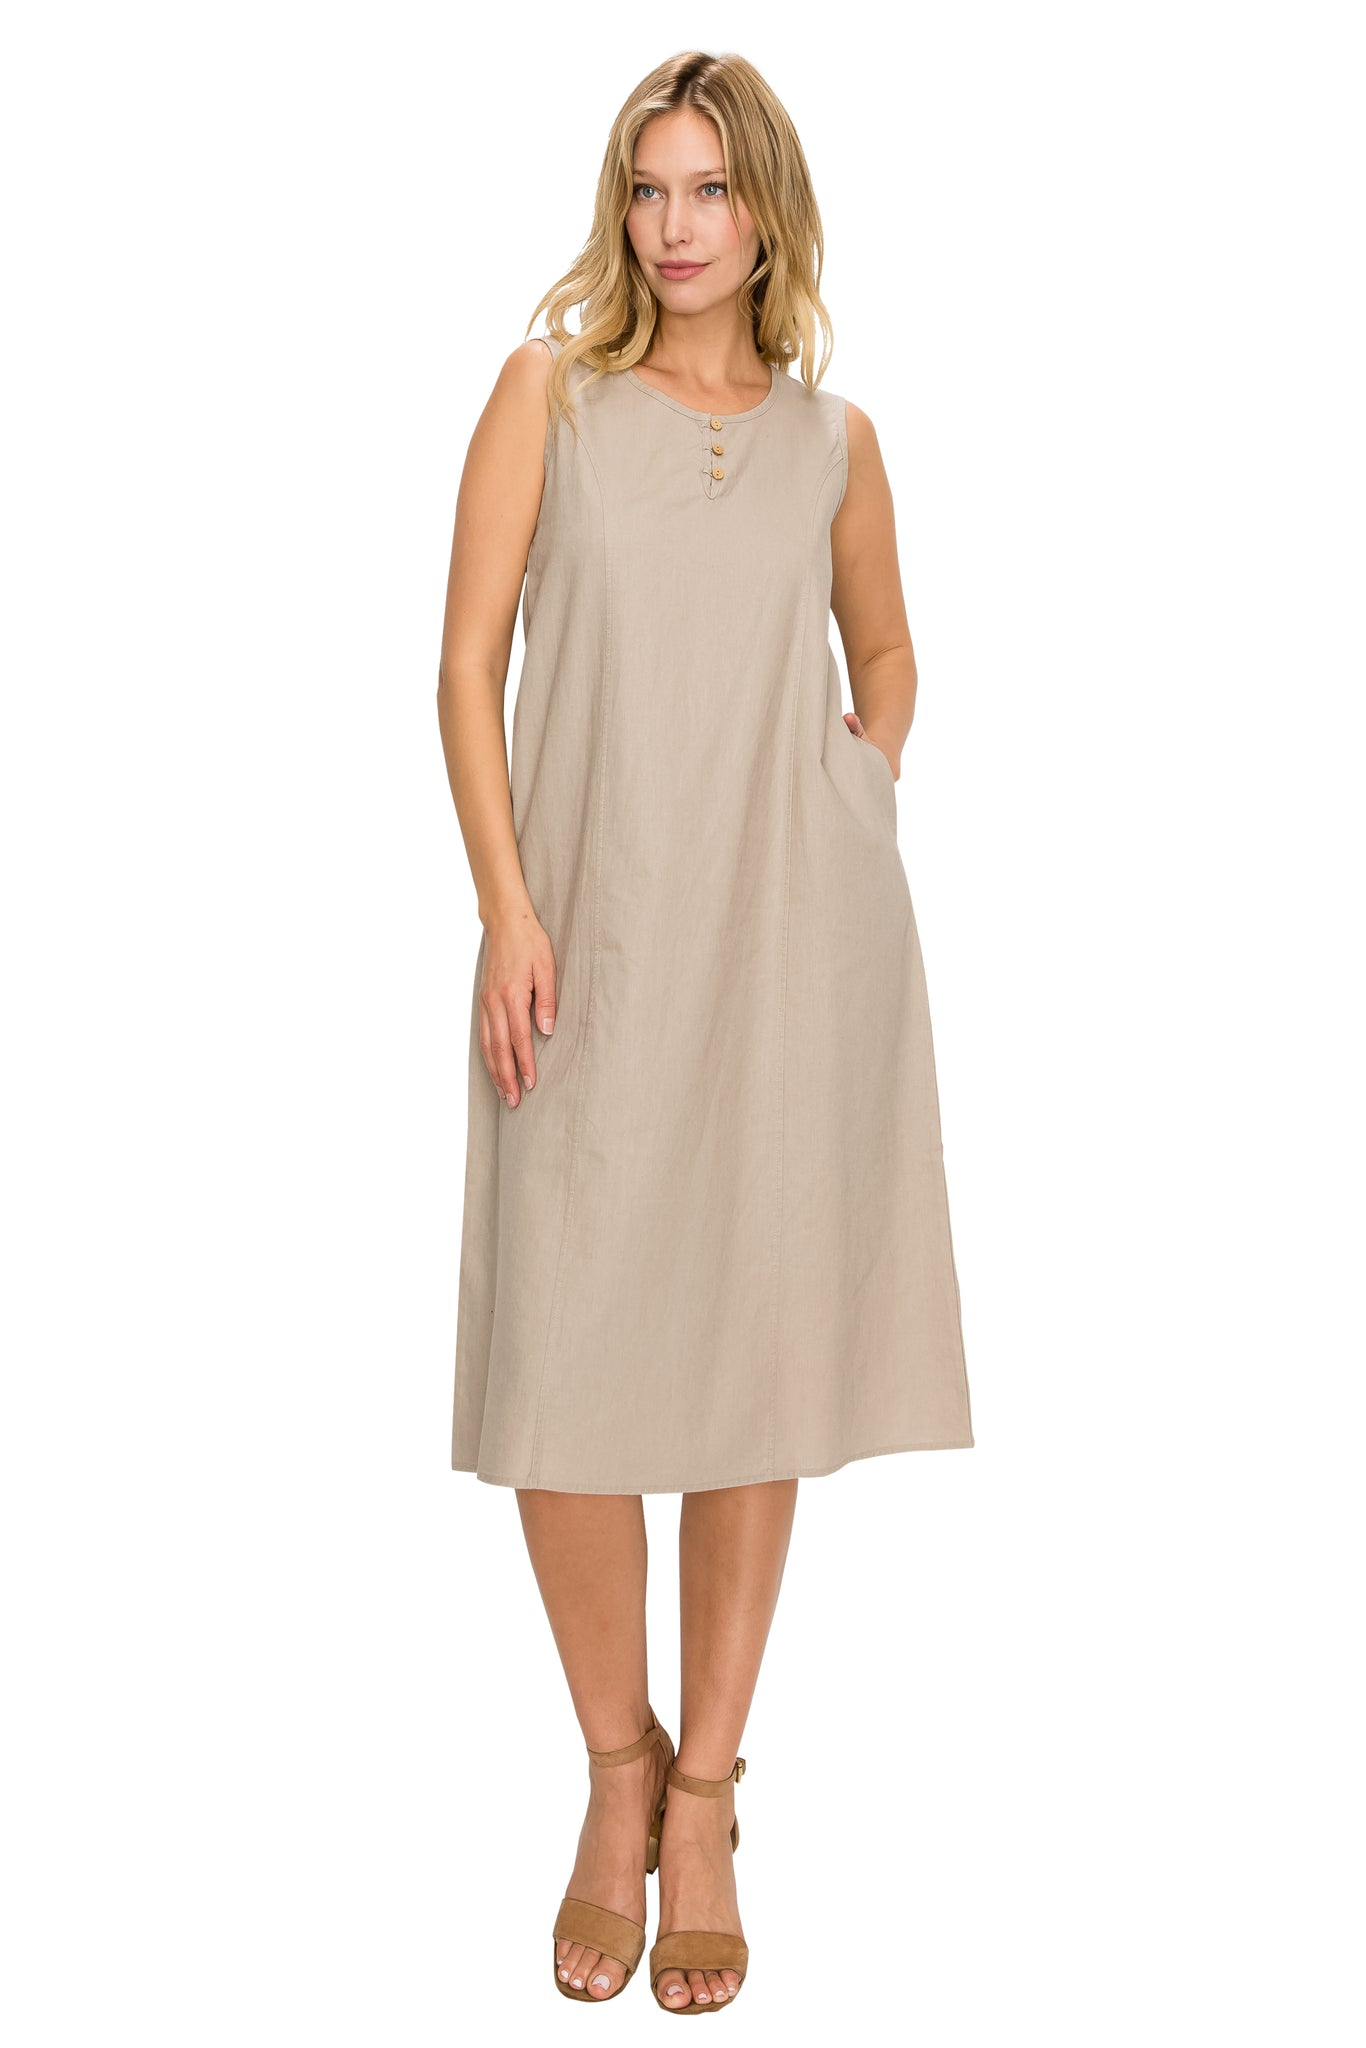 Beige Linen Midi-Dress - Poplooks